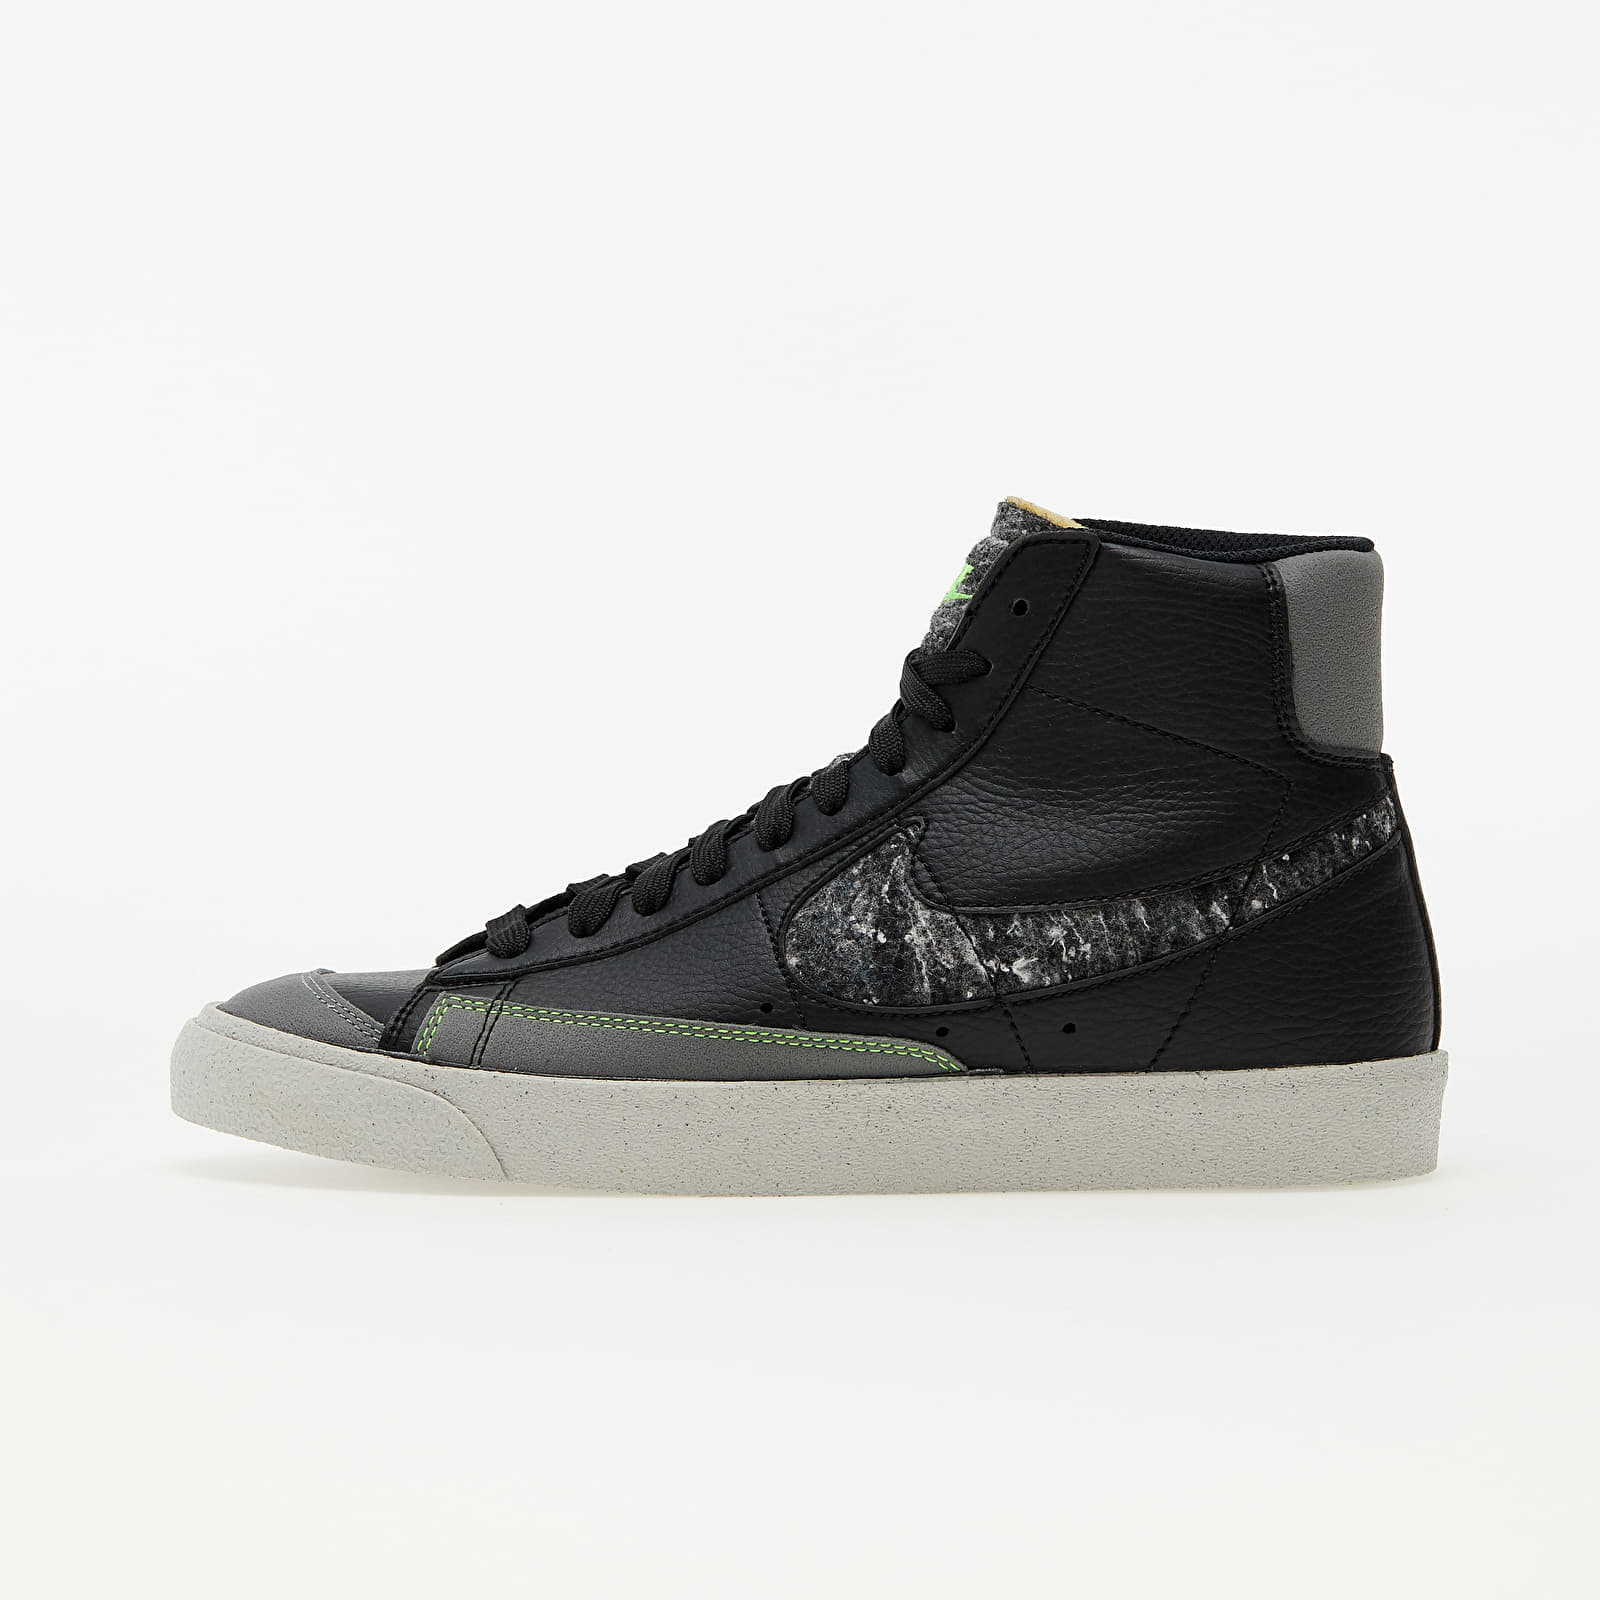 Nike Blazer Mid '77 Vintage Black/ Smoke Grey-Electric Green EUR 44.5